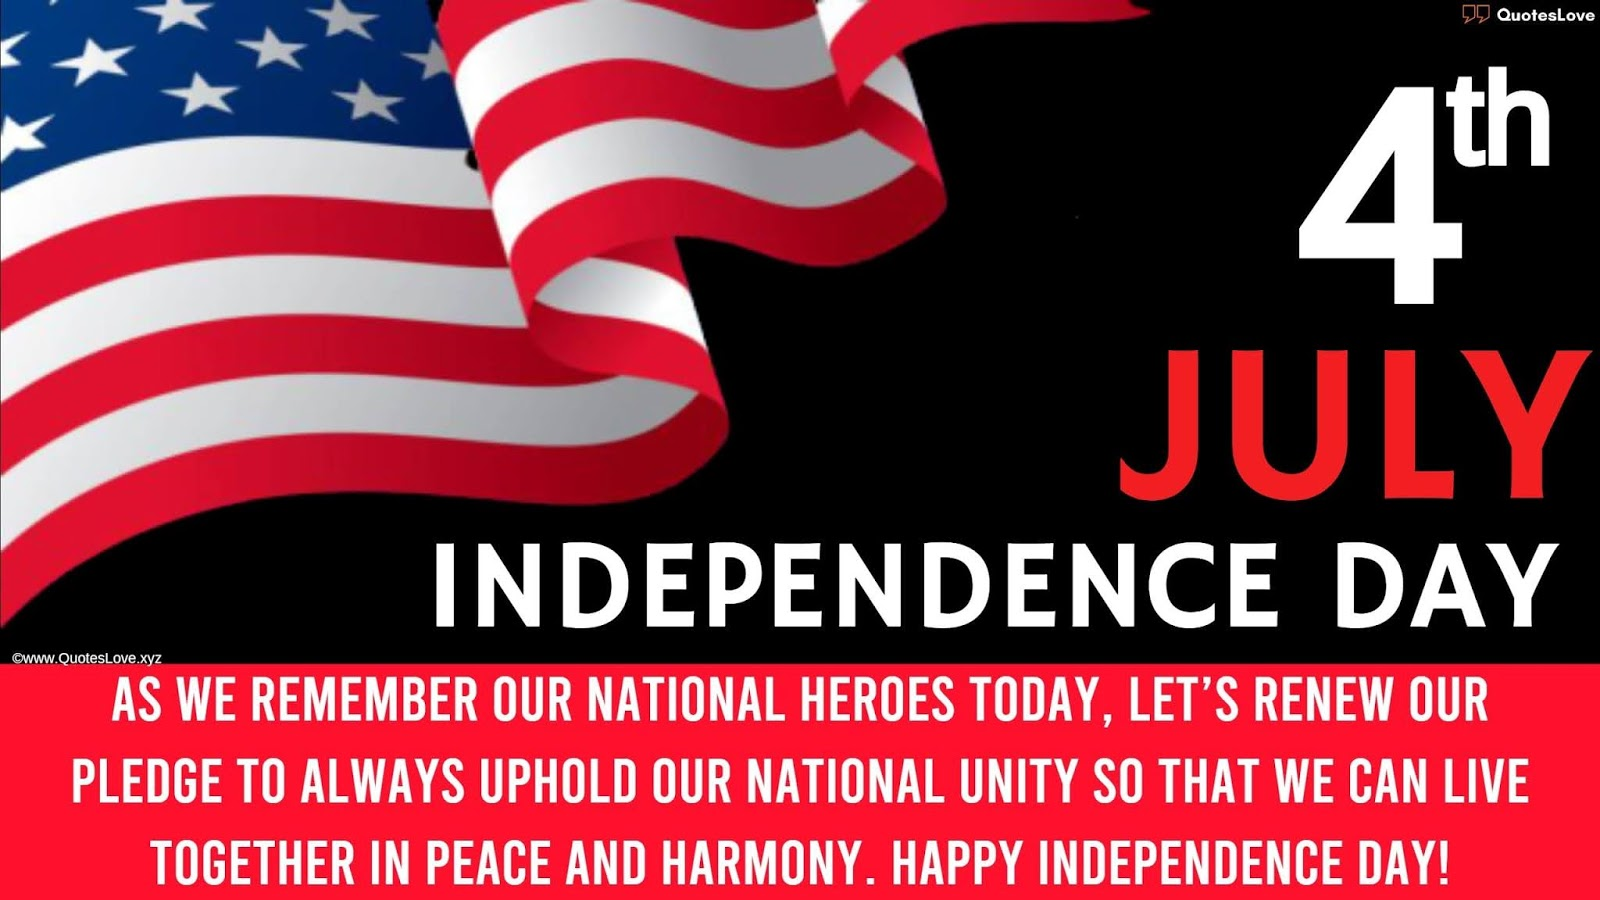 [4th July] Independence Day In America Quotes, Wishes, Messages, Greetings, Sayings, Images, Pictures, Poster, Wallpaper